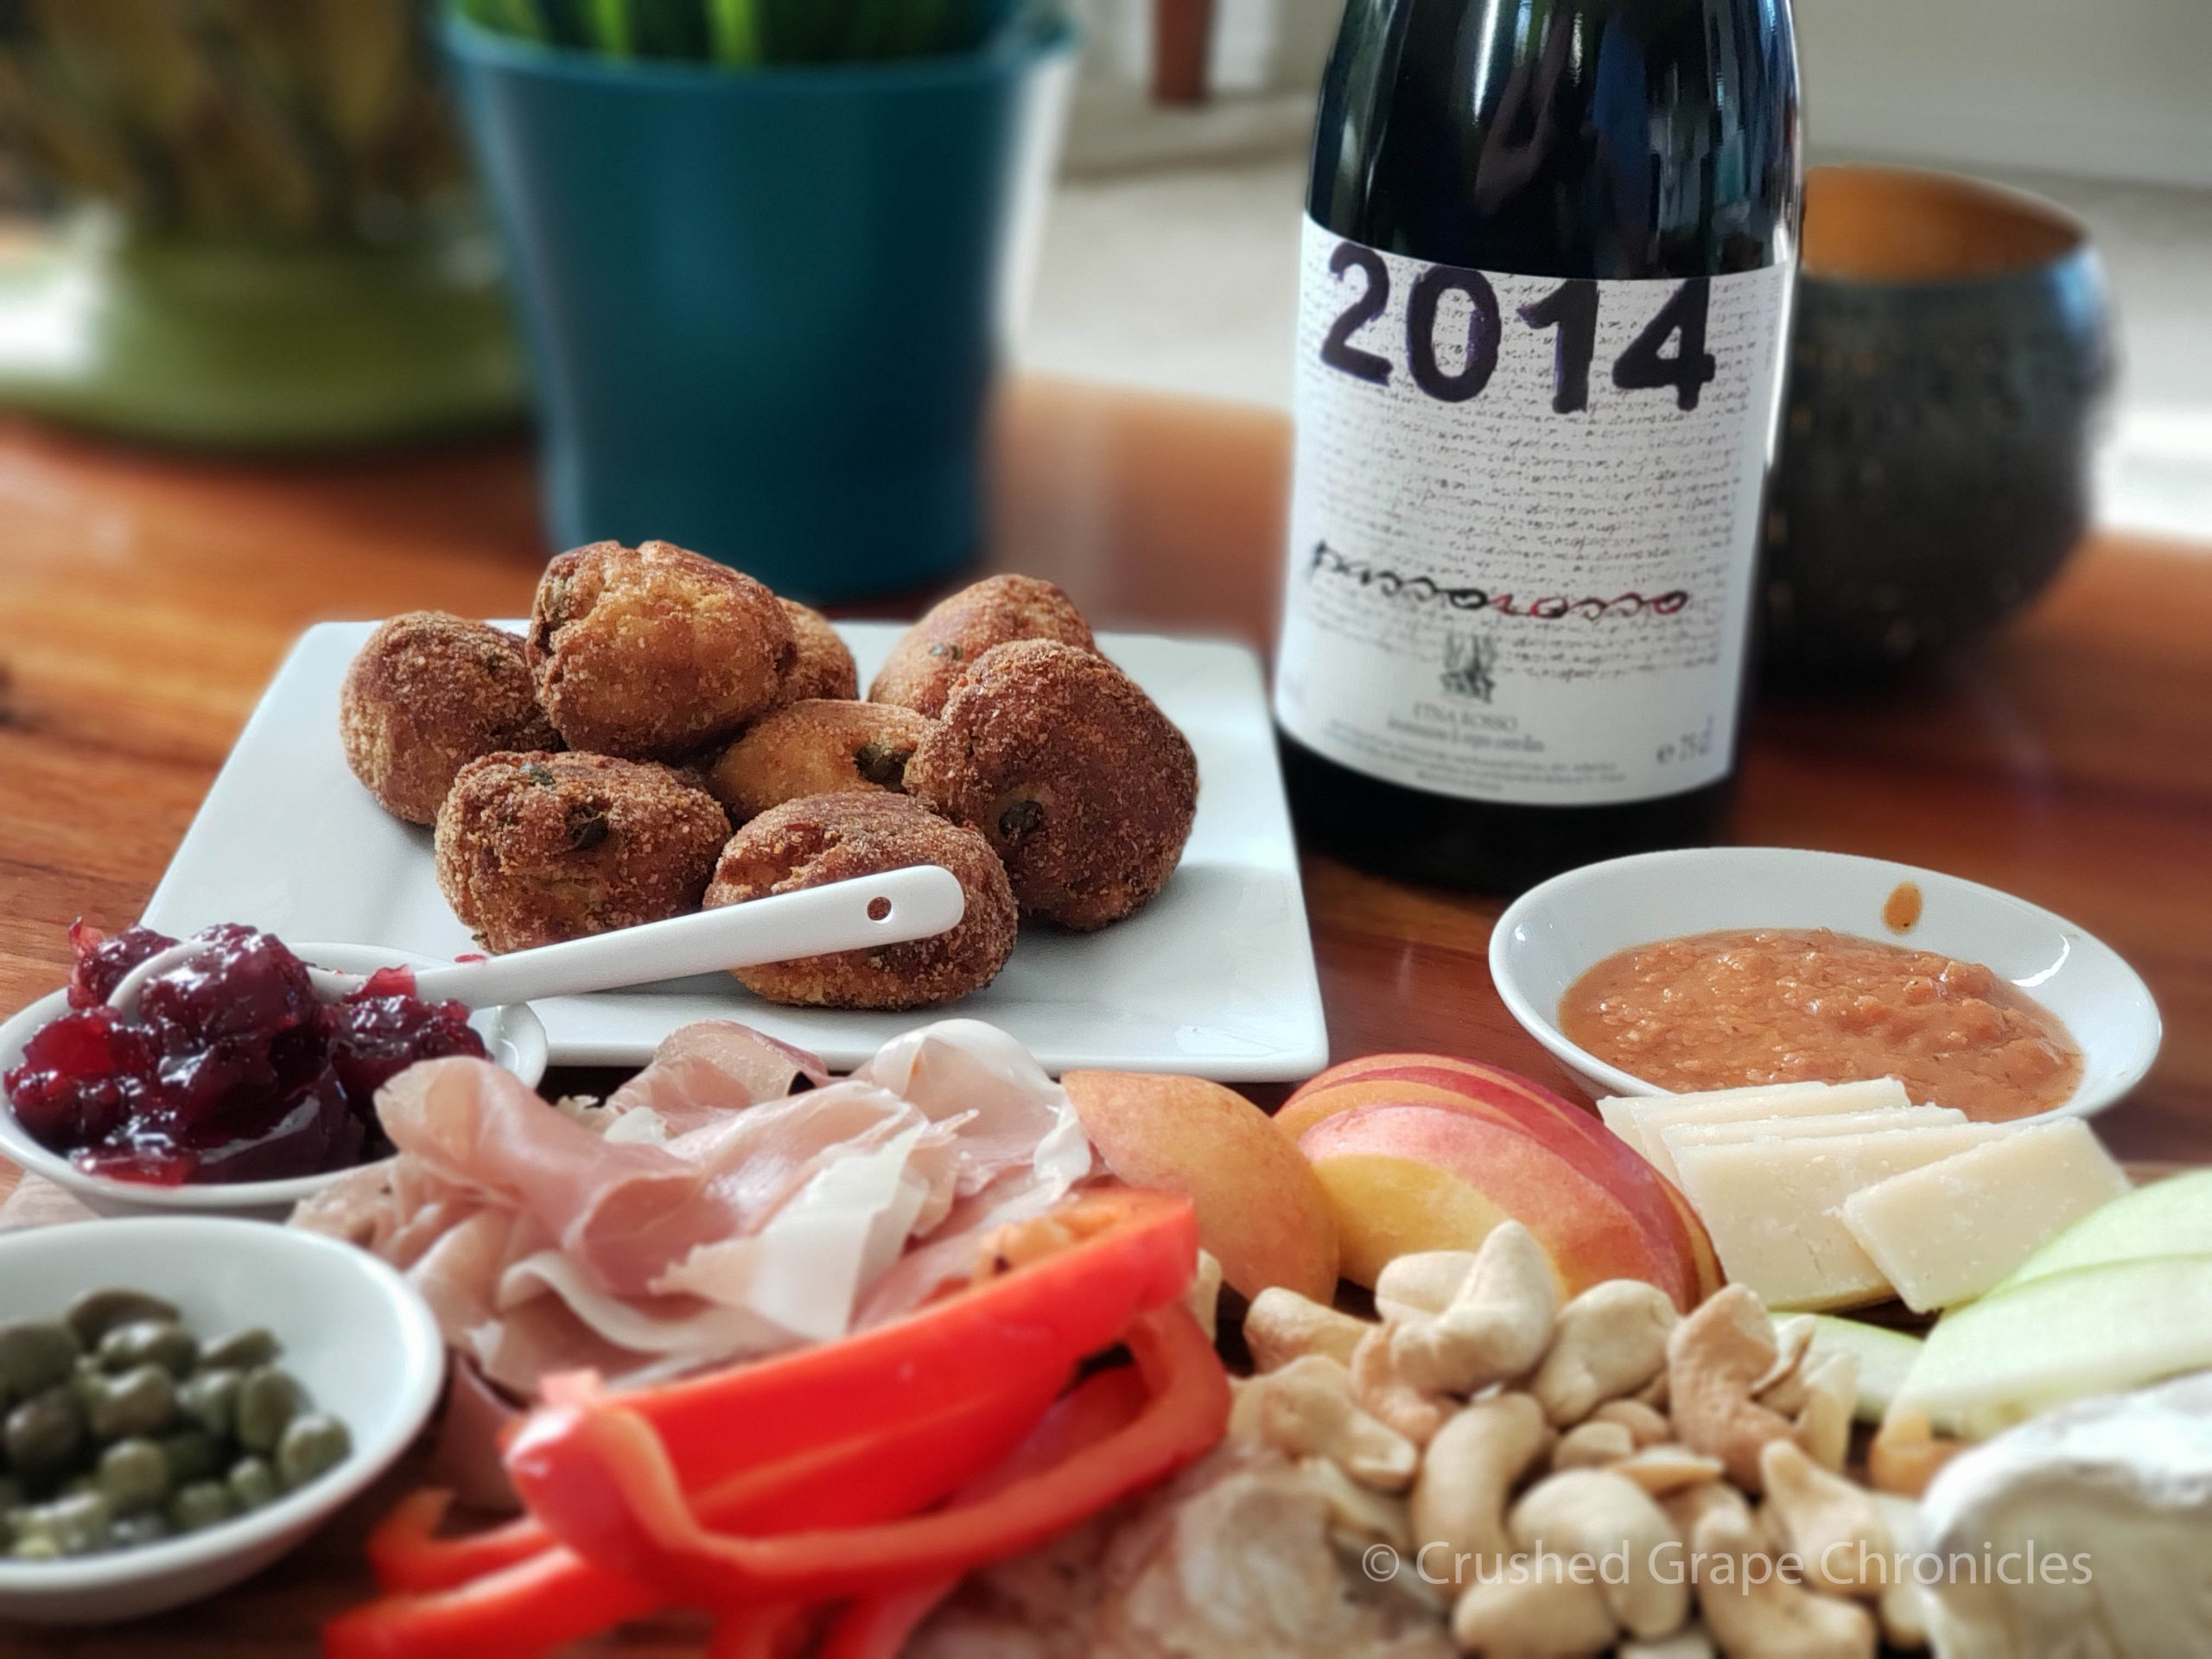 Passorossa 2014 from Mount Etna and a selection of pairings